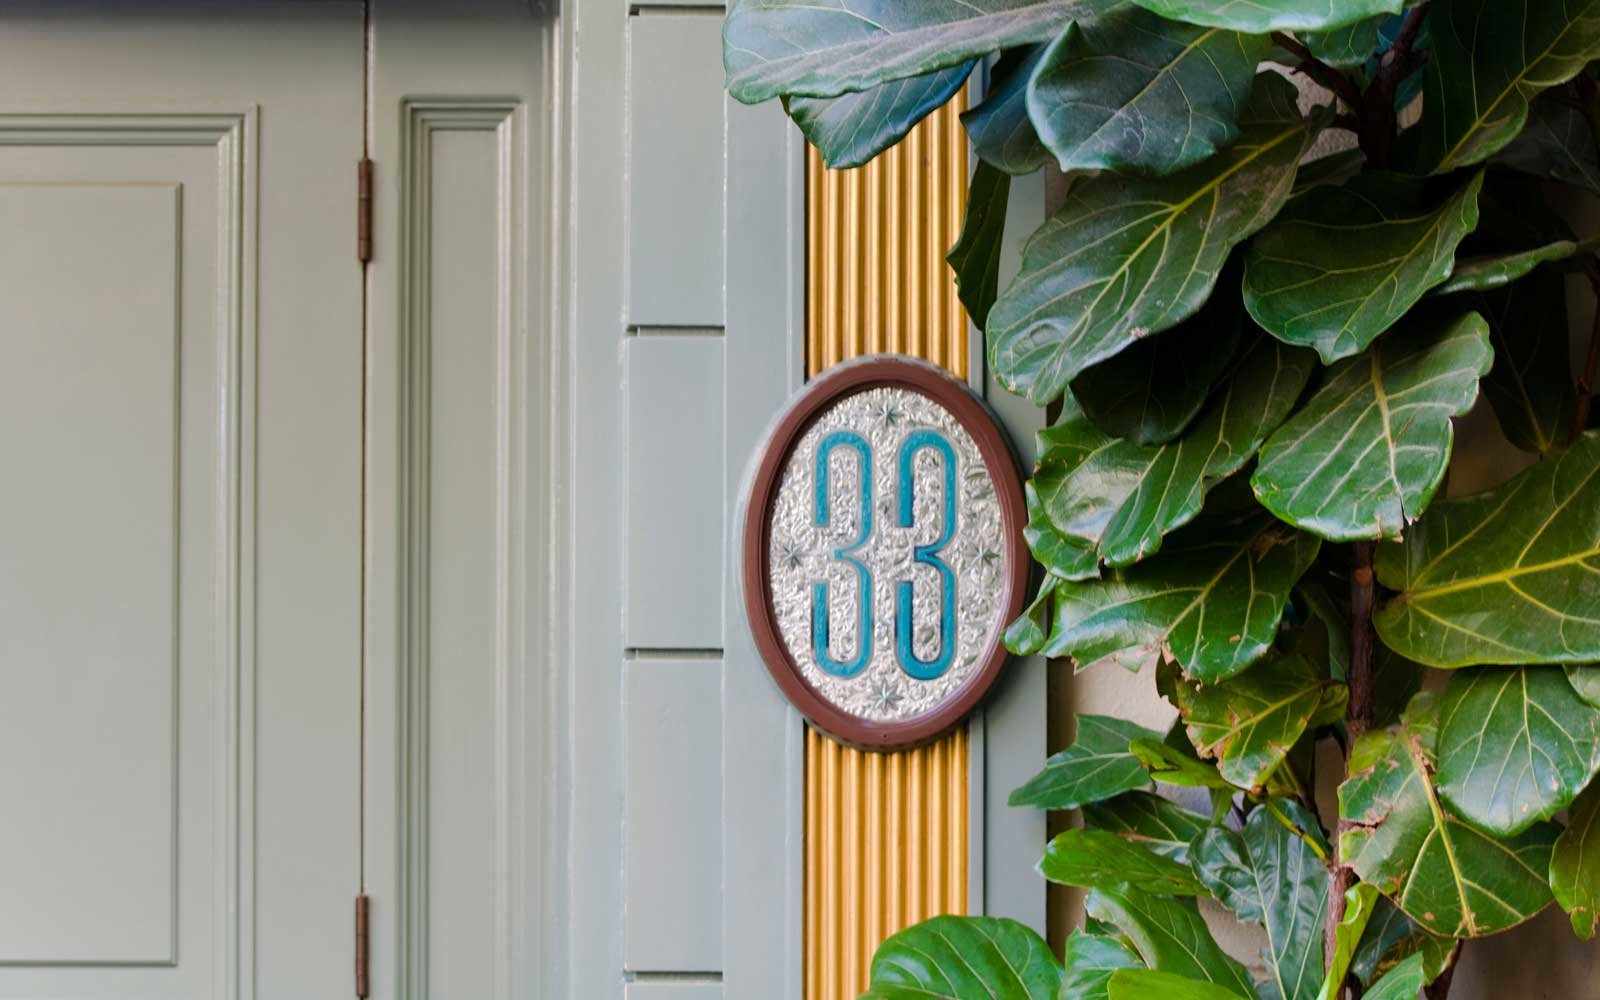 Club 33 Coming to Disney World